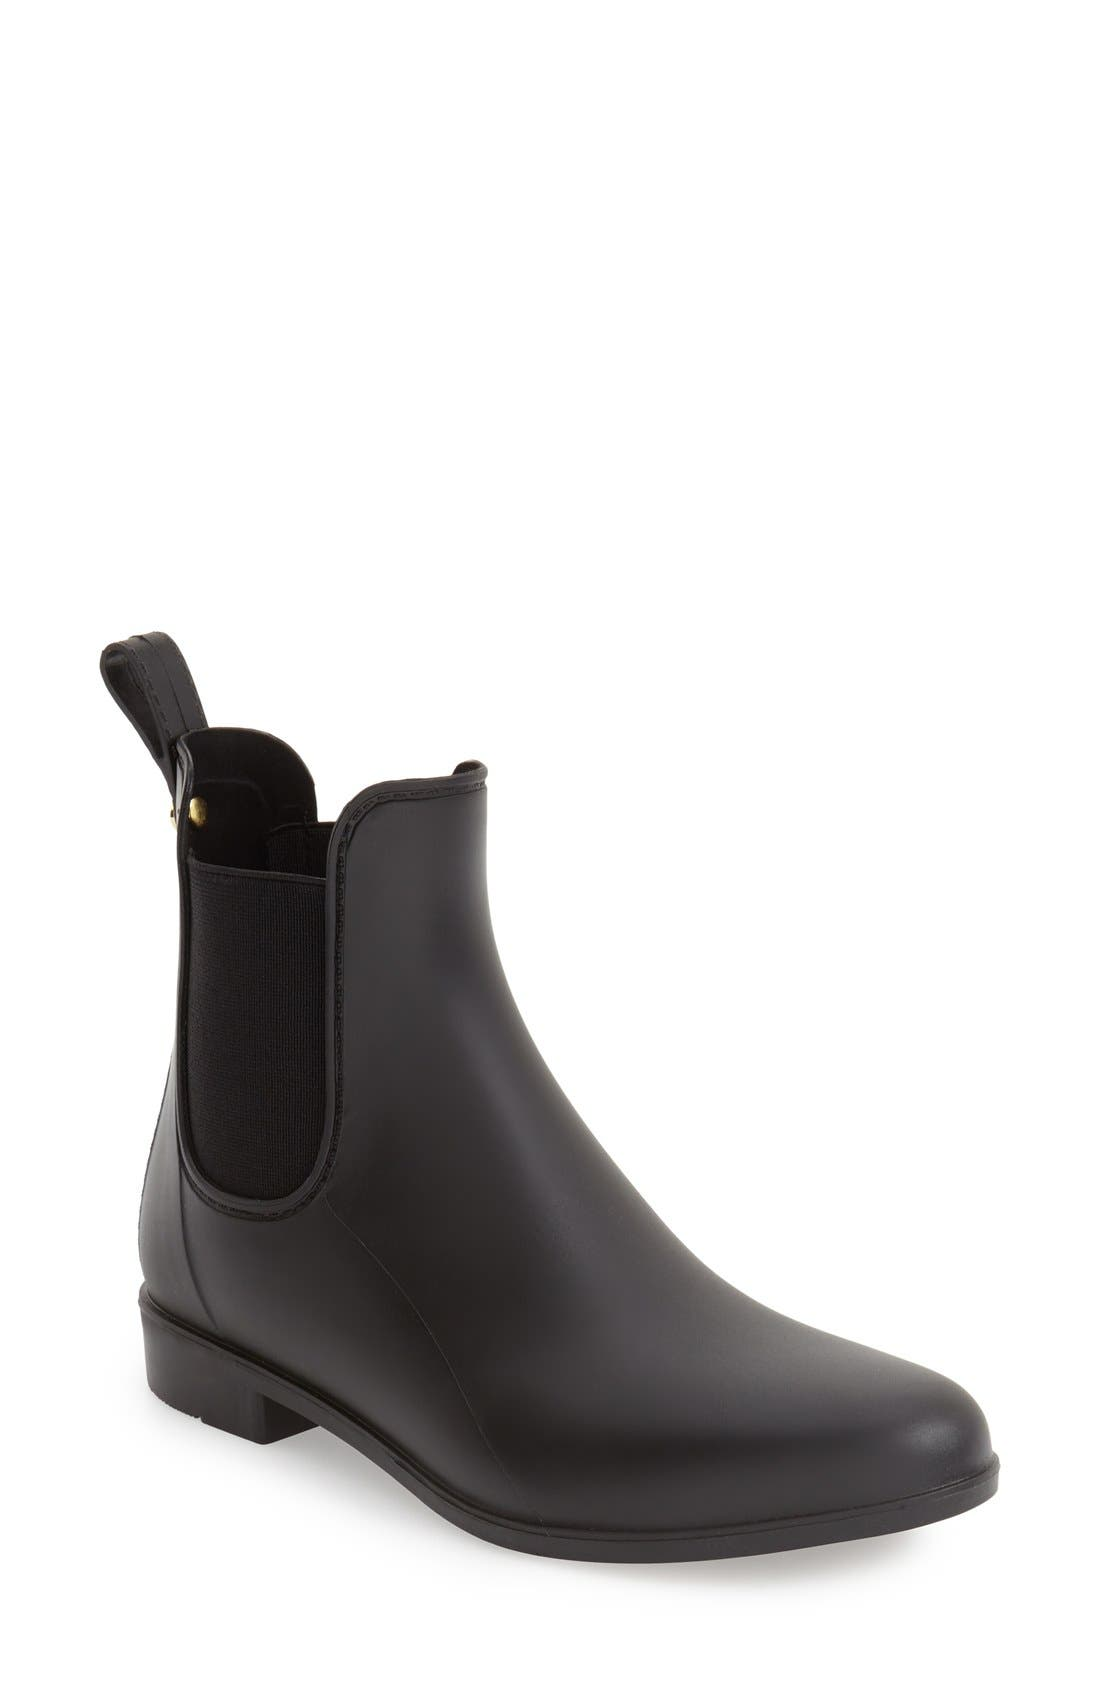 Women's Rain Boot Special-Size Shoes | Nordstrom